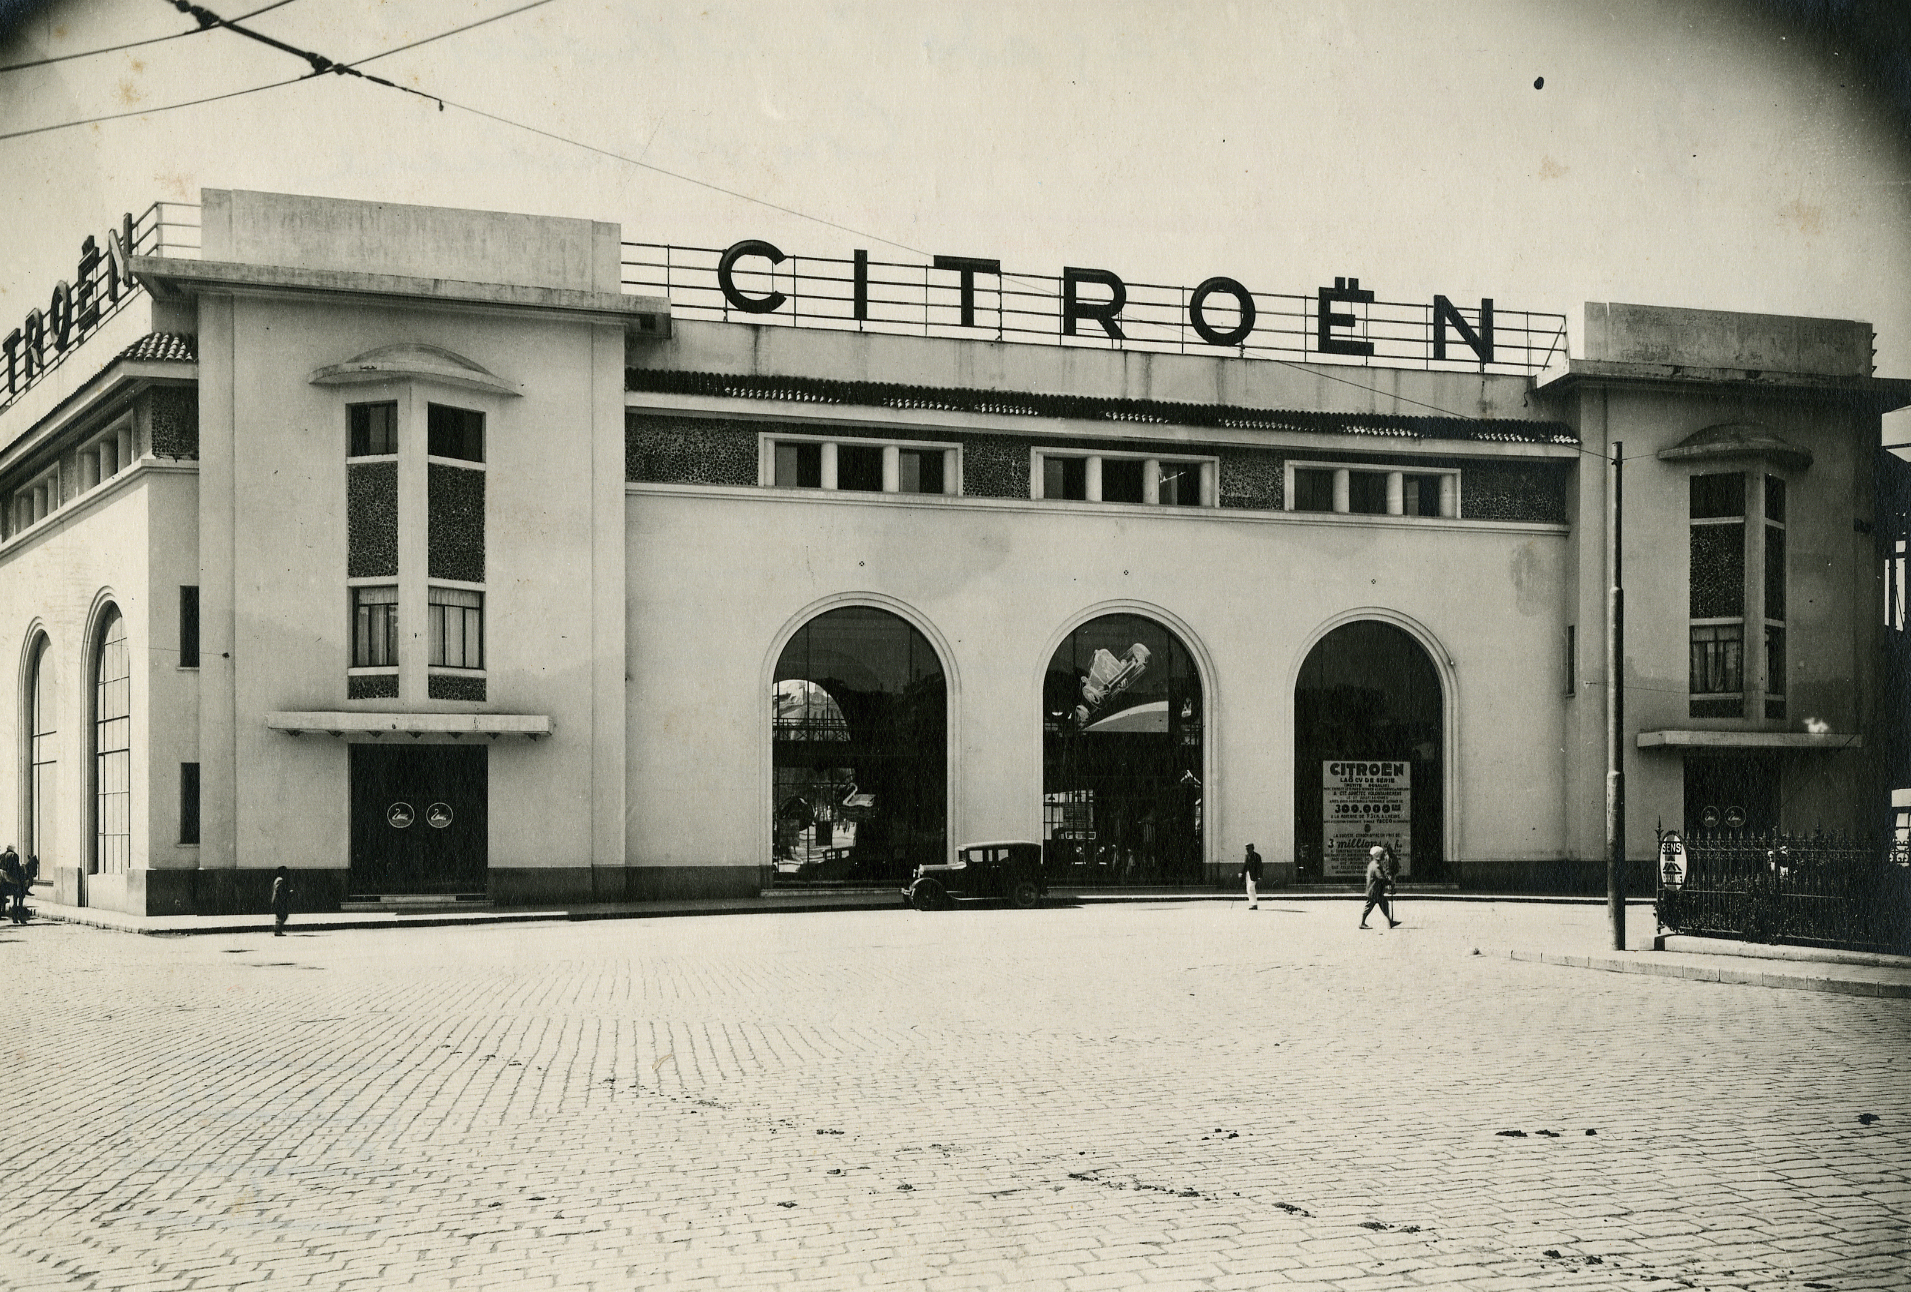 Ancien garage citro n constantine archives d for Garage citroen crepy en valois